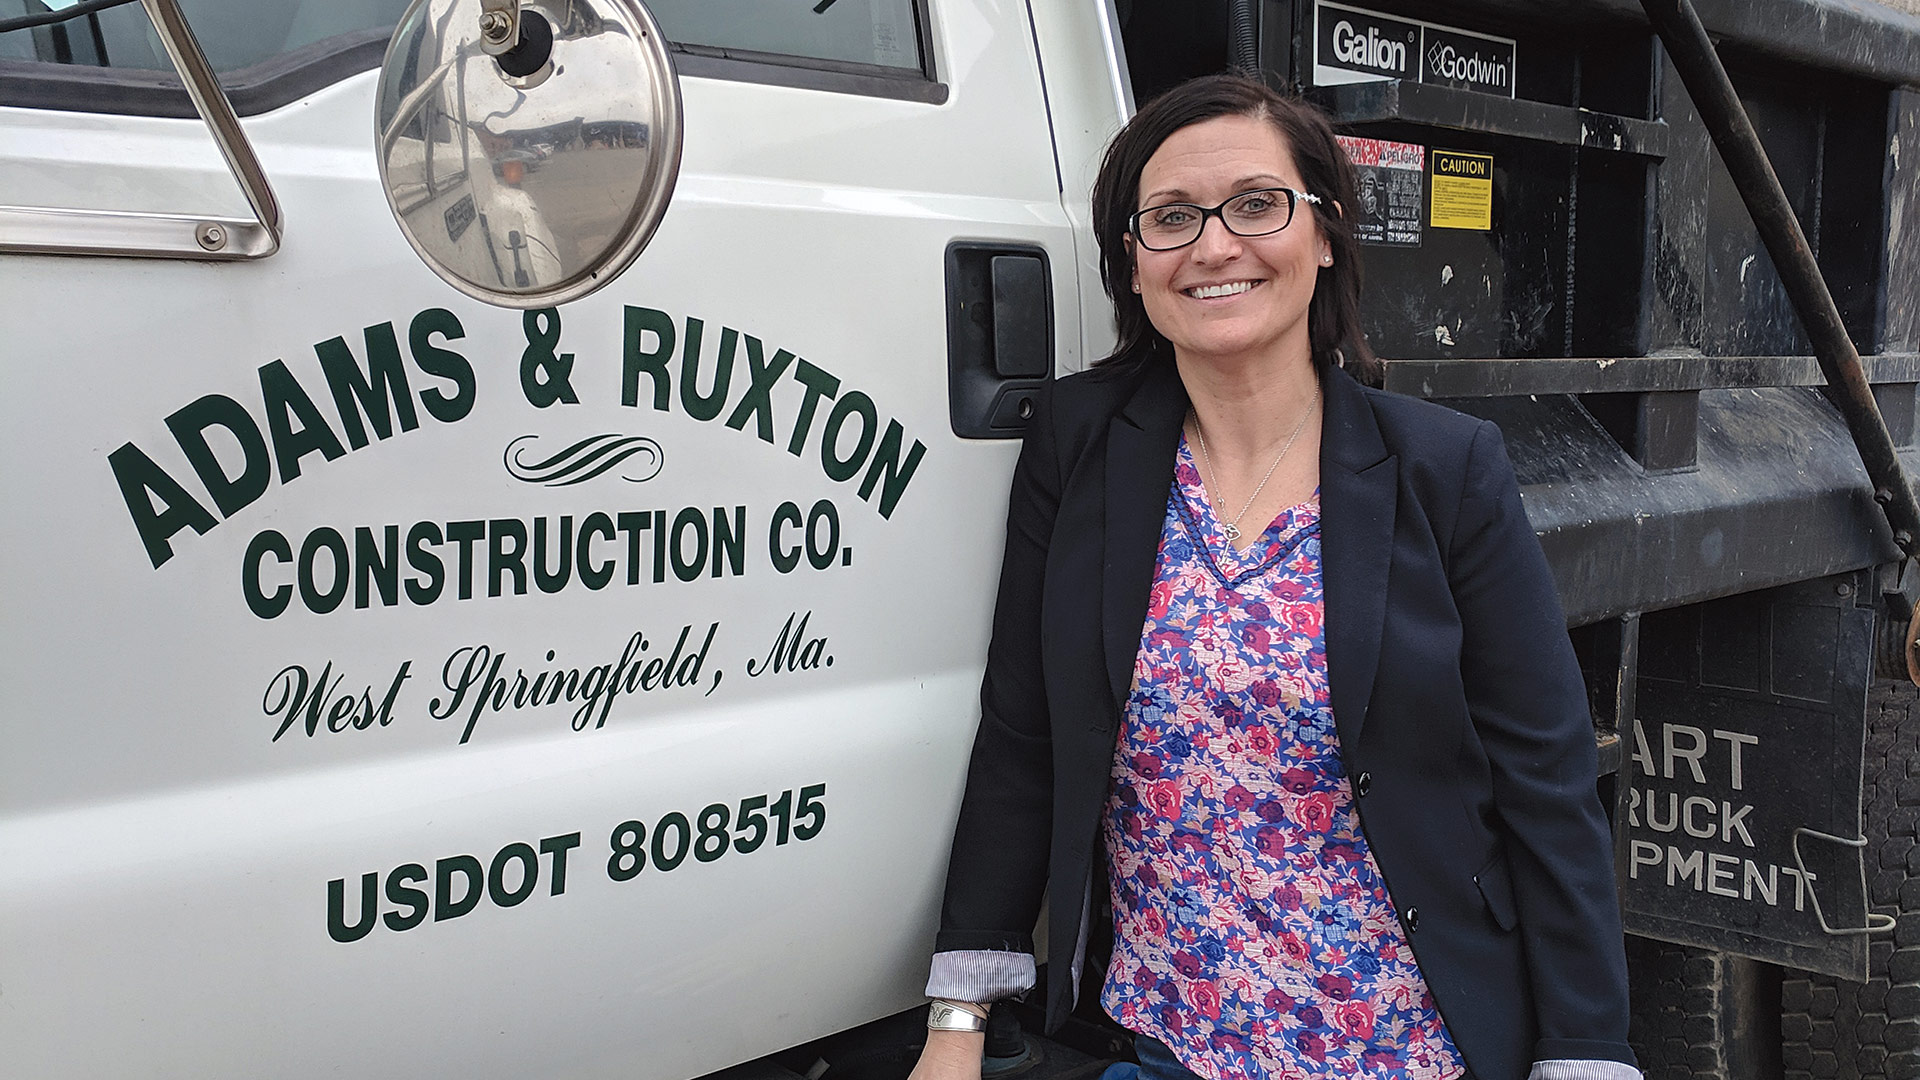 Dorothy Ostrowski says she's never been happier than she is at the helm of a venerable construction firm.